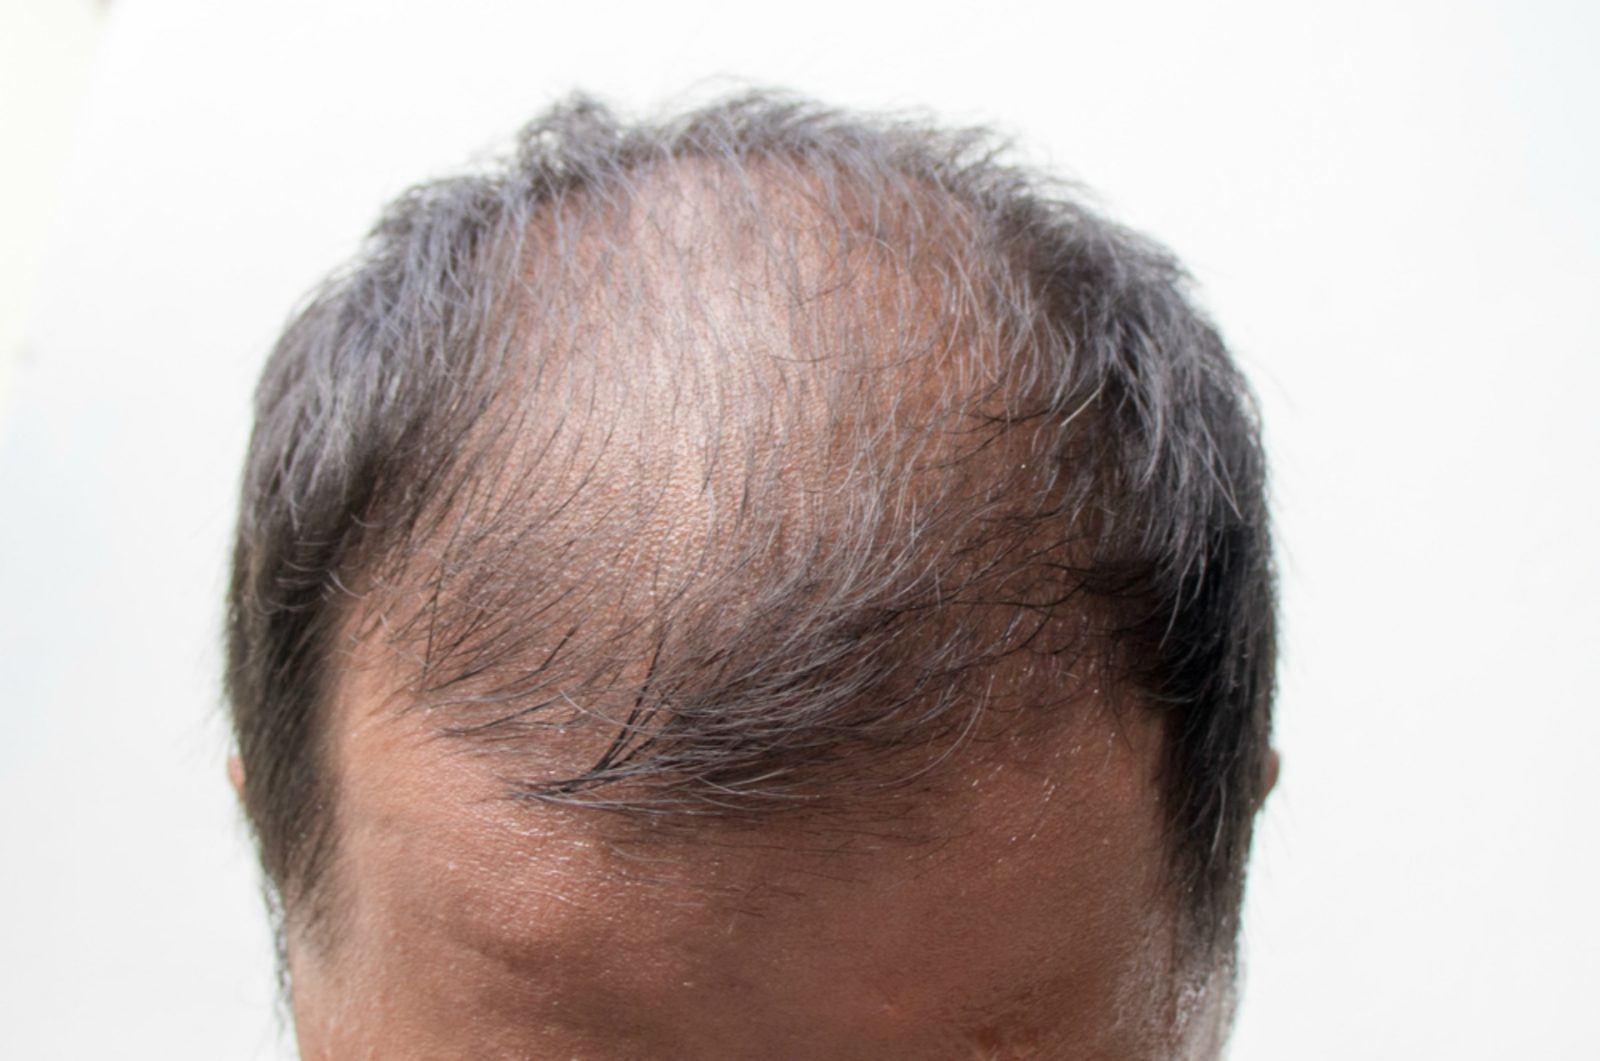 An elderly man with pattern baldness.